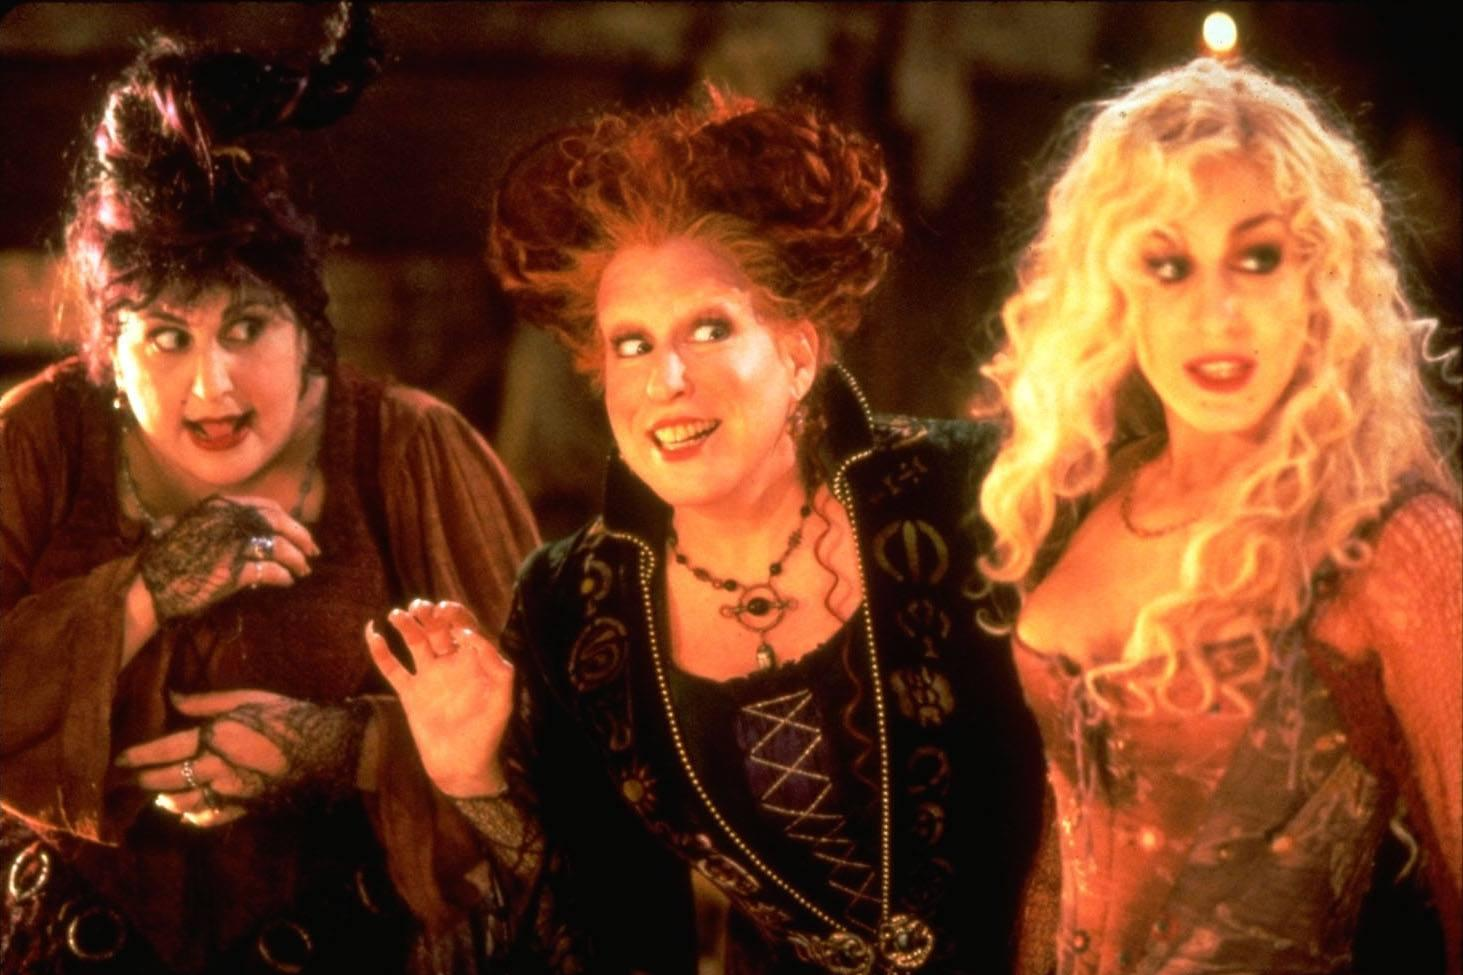 Hocus Pocus: A Look Back At The Cast Ahead Of The Sequel